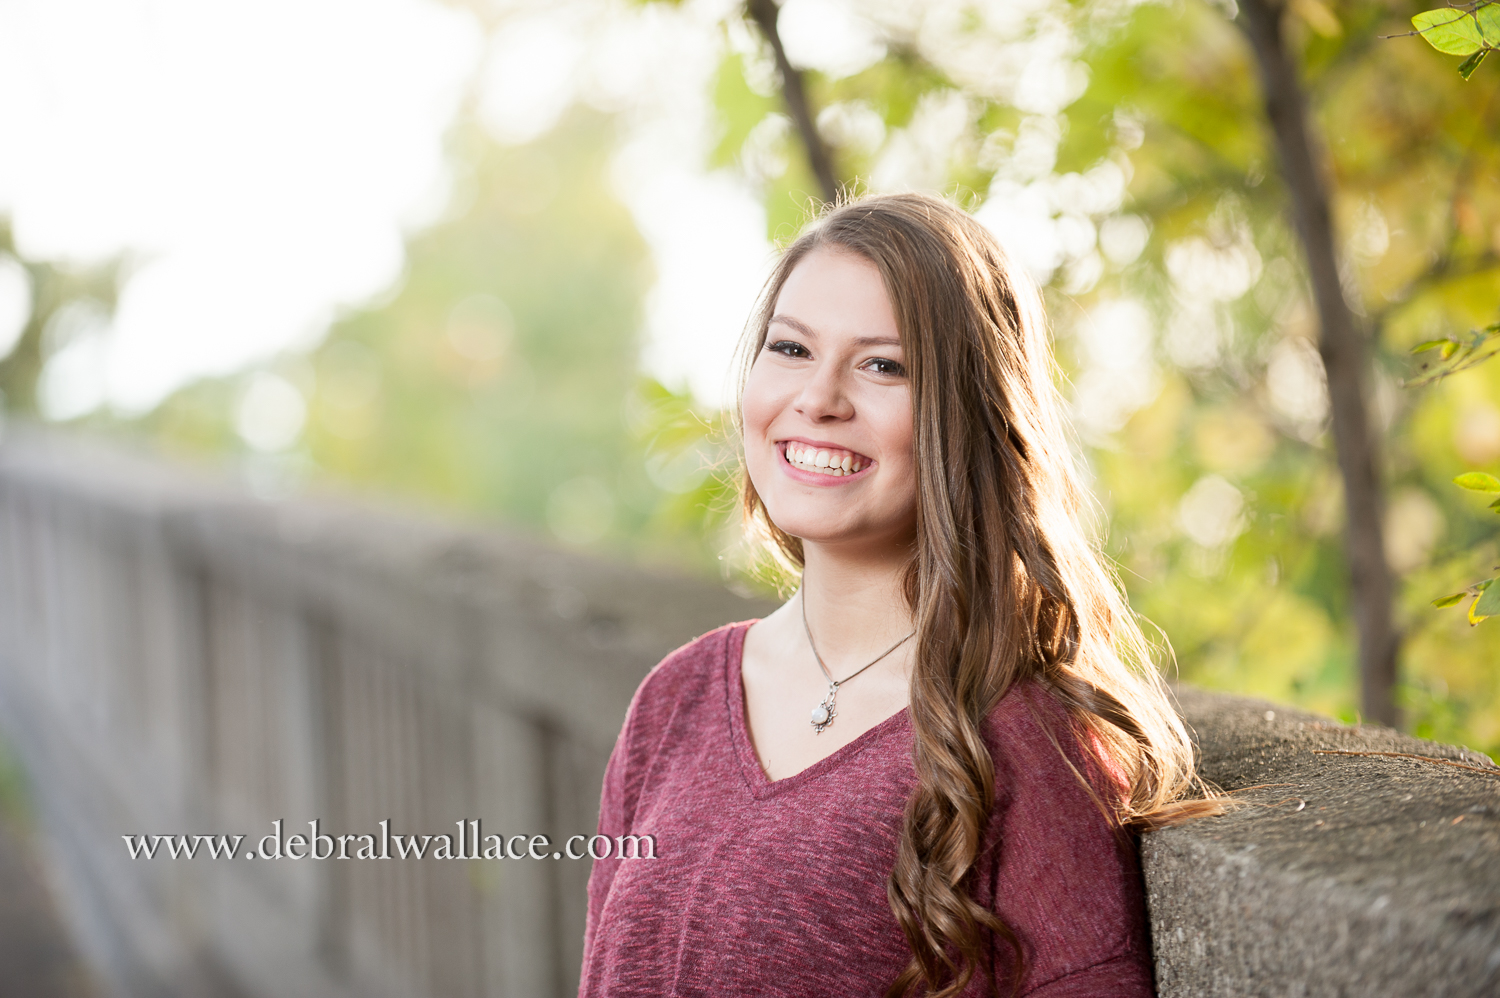 genesee valley park senior portraits-0213